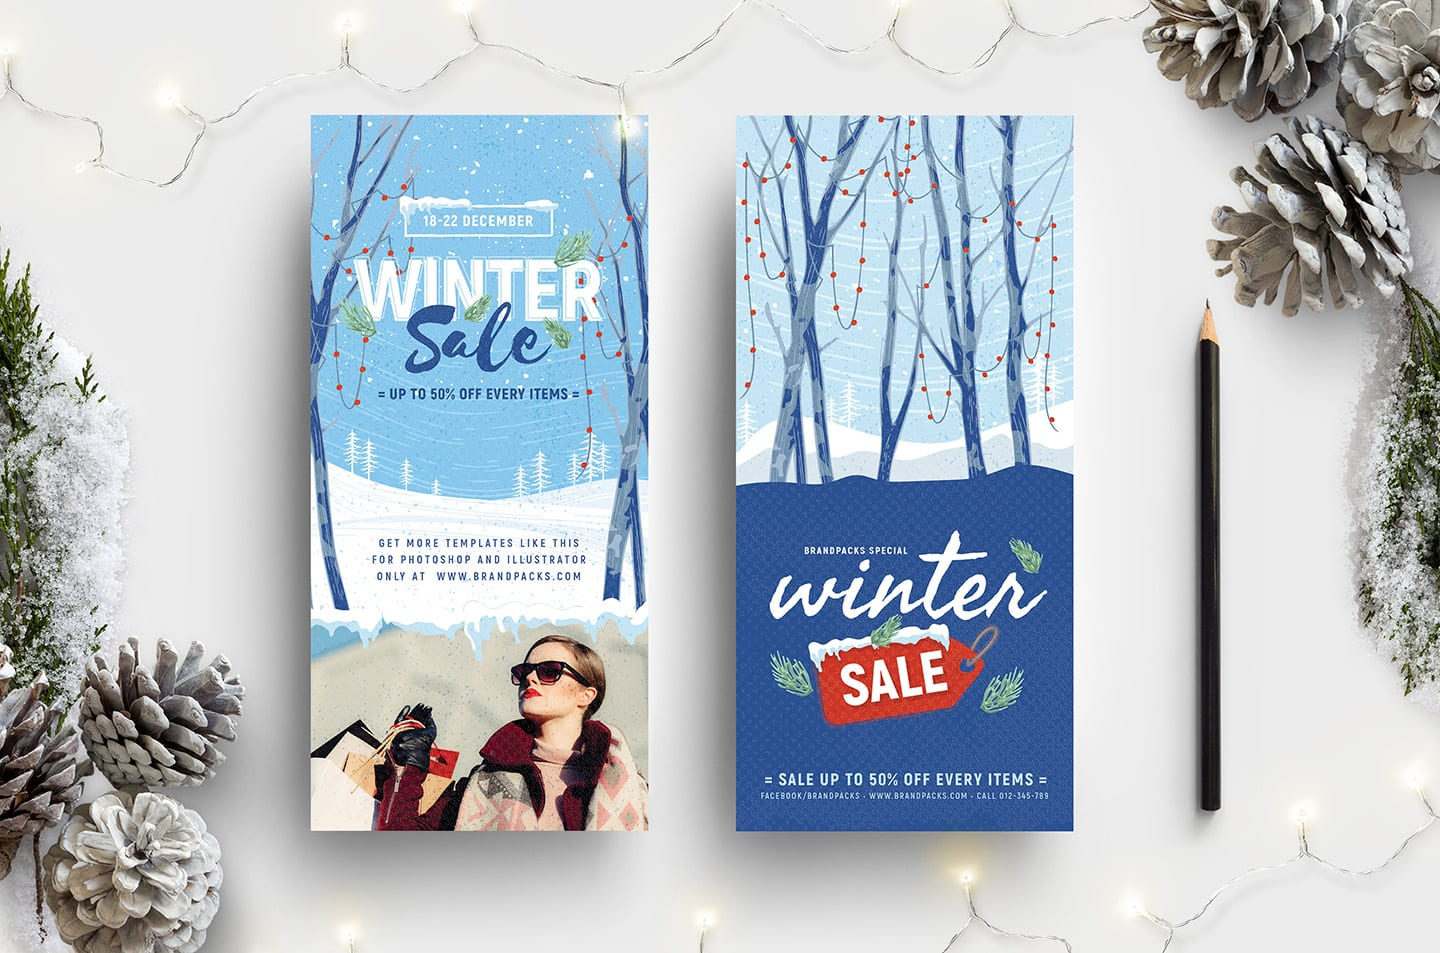 Winter Sale DL Card Template